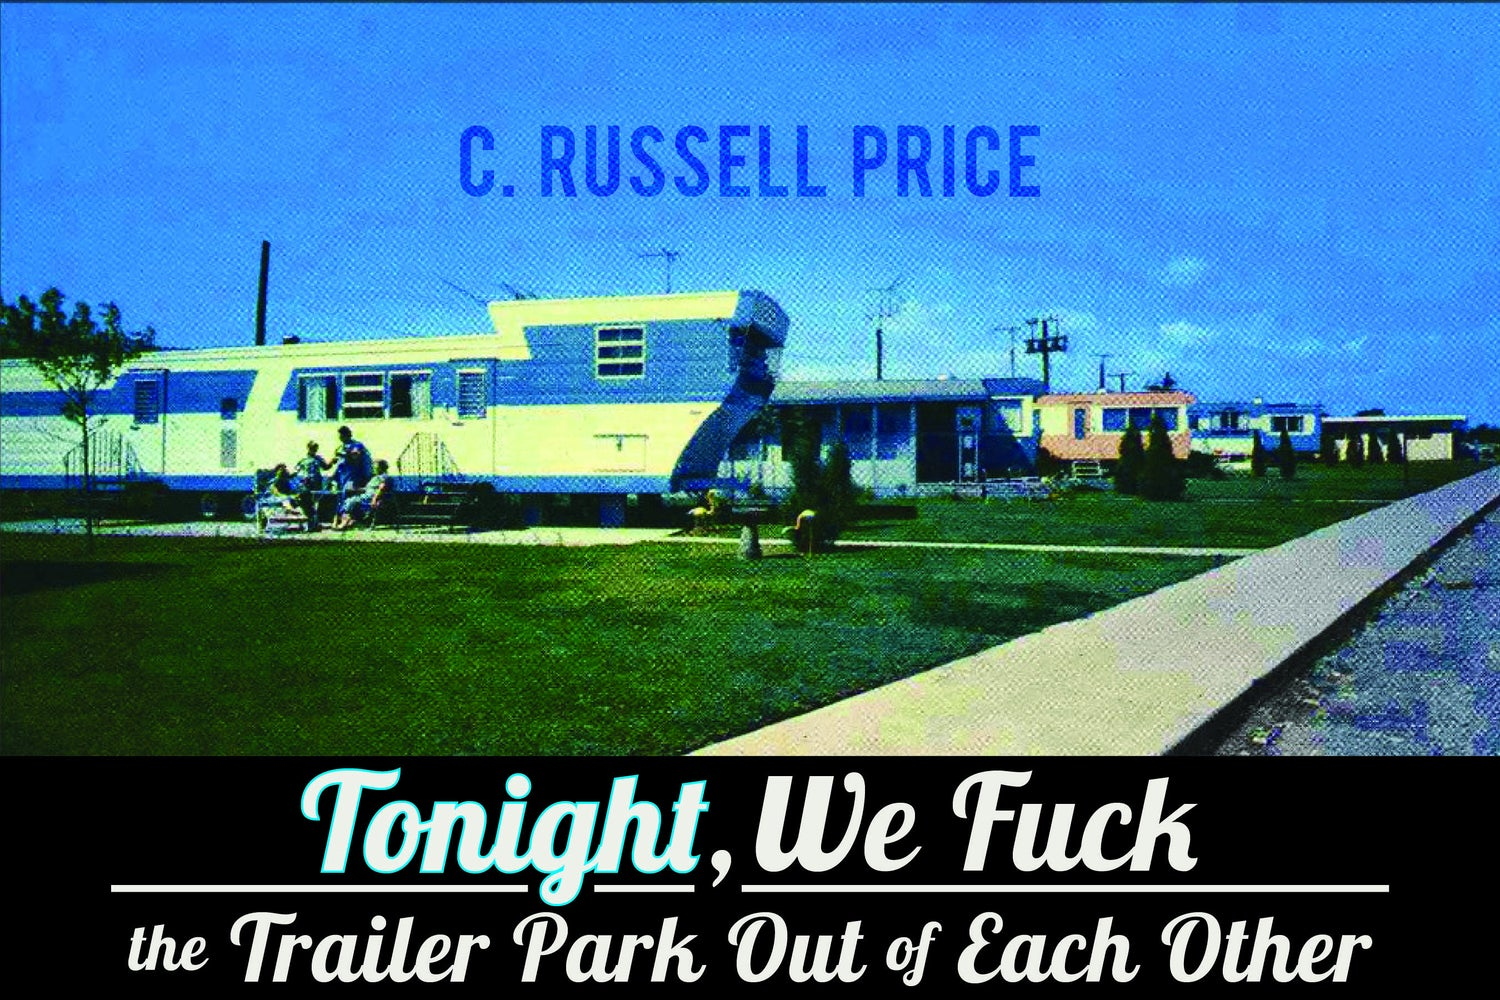 Tonight, We Fuck the Trailer Park Out of Each Other book image